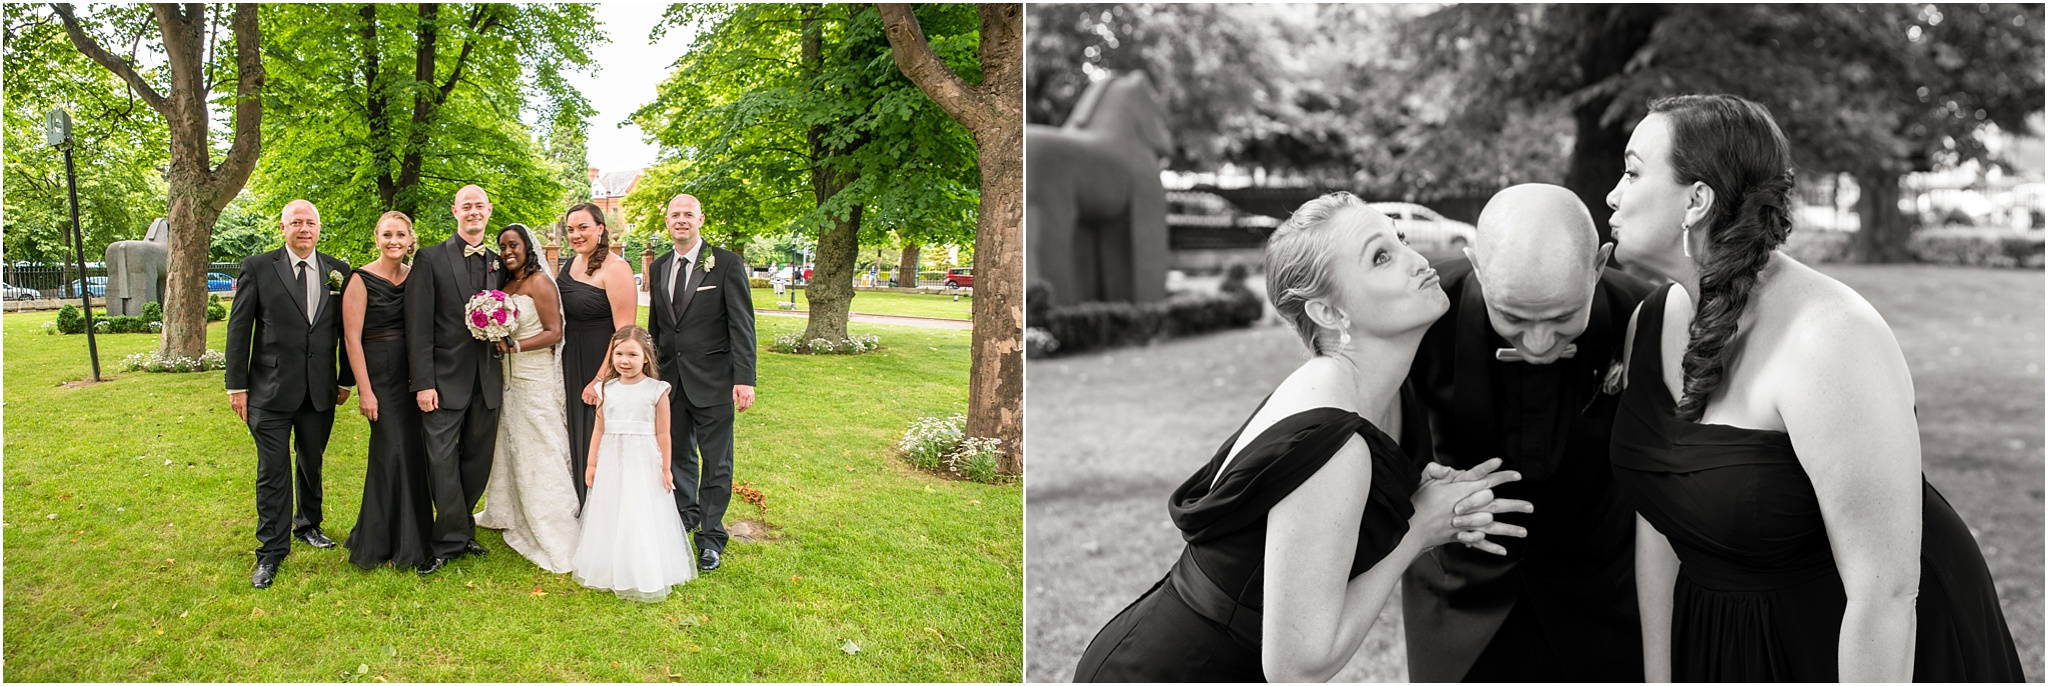 Greg Smit Photography Dublin Ireland wedding photographer Thomas Prior Hall 23